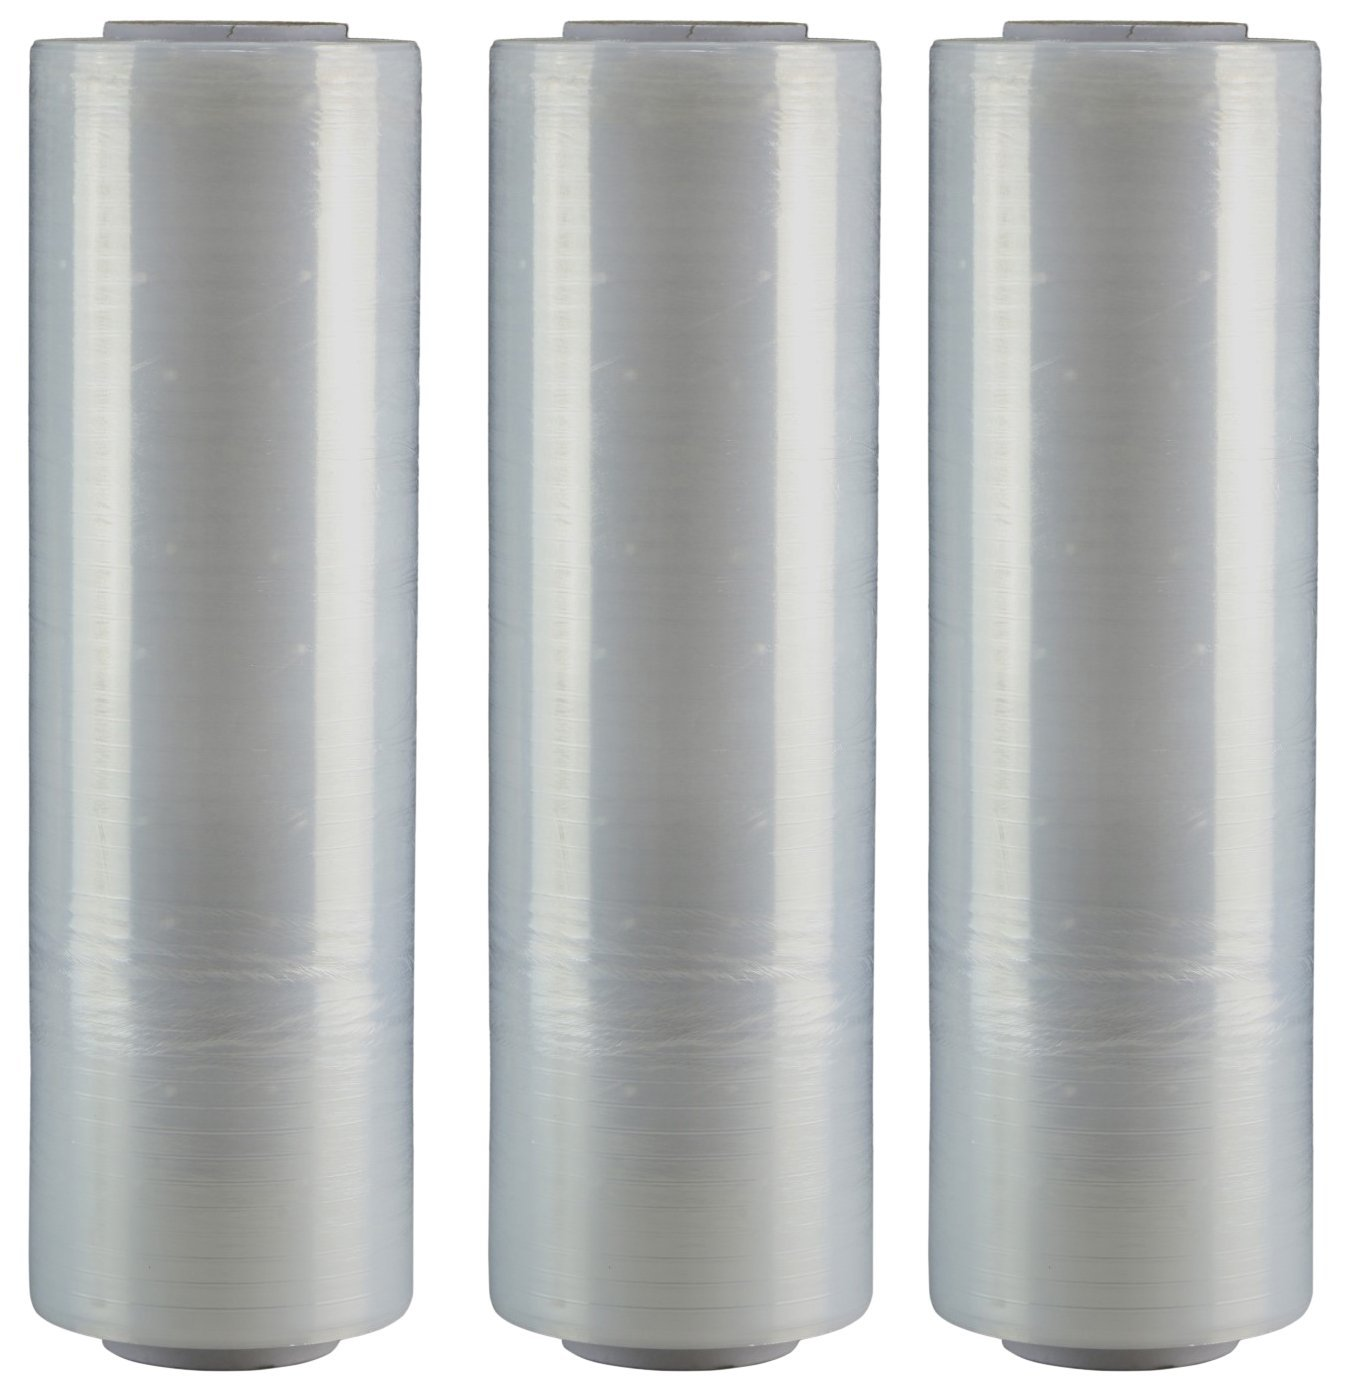 """AMERIQUE Shrink Wrap 3 Pack (3000FTX18"""", 19 LBS Total): Stretch Film Plastic Wrap - Industrial Strength Hand Stretch Wrap, 18""""x 1,000 FT Per Roll, 80 Gauge Shrink Film / Pallet Wrap – Clear"""